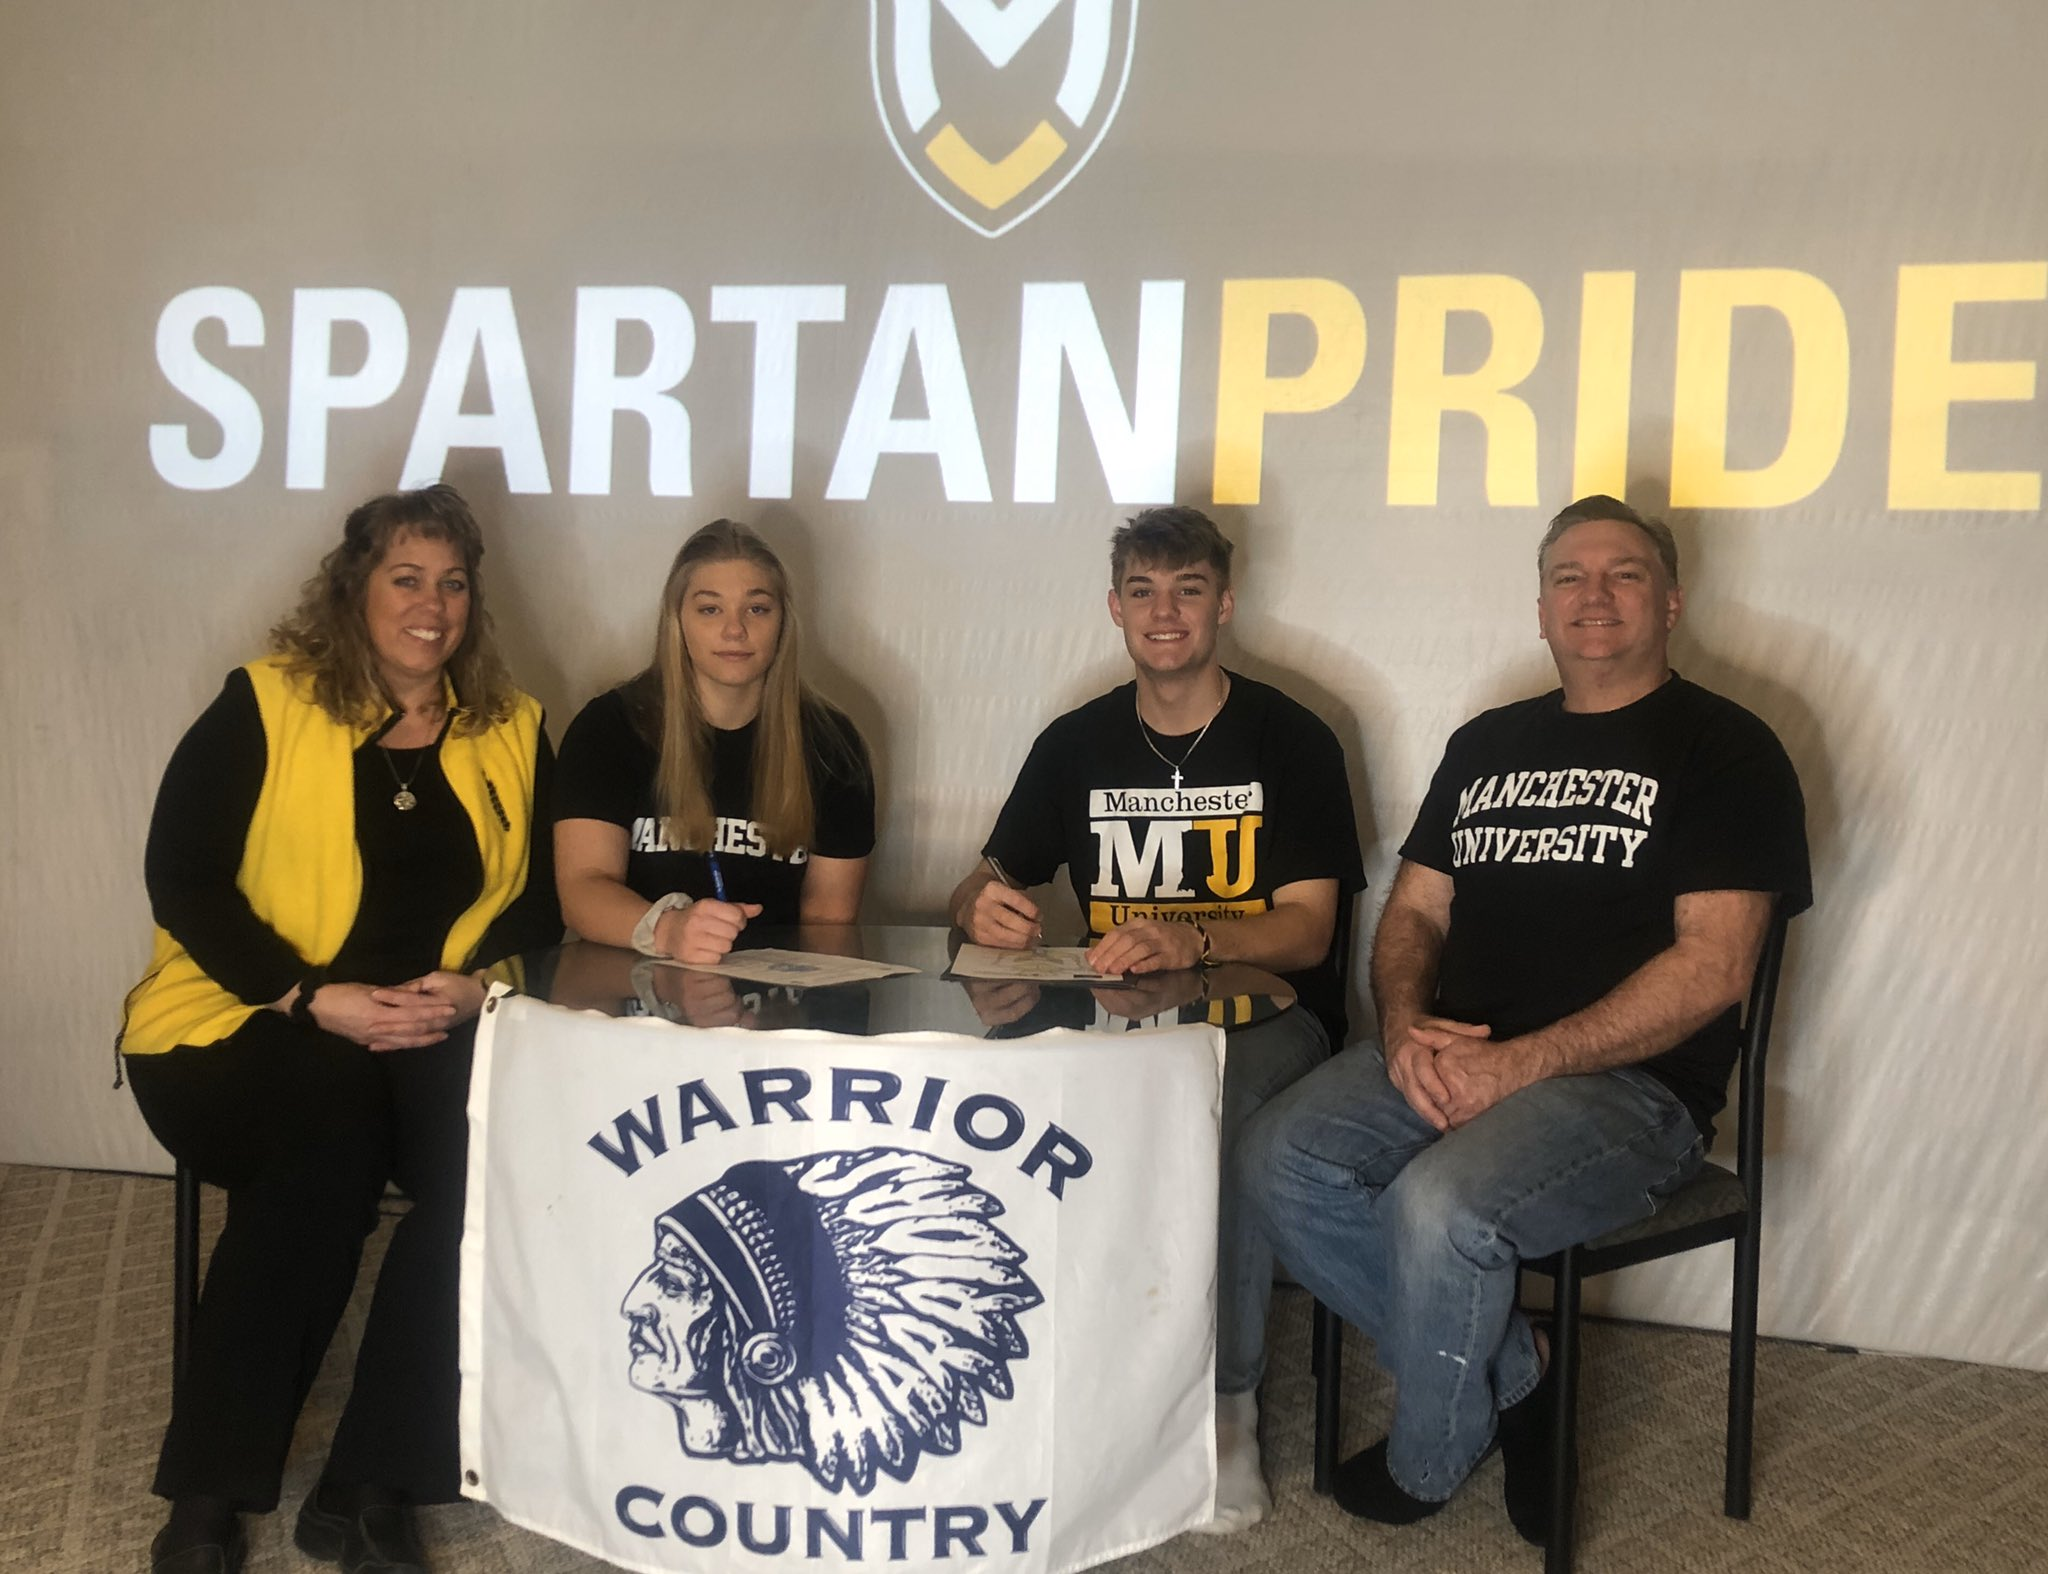 Woodlan's Mendenhall Twins both will play basketball at Manchester University